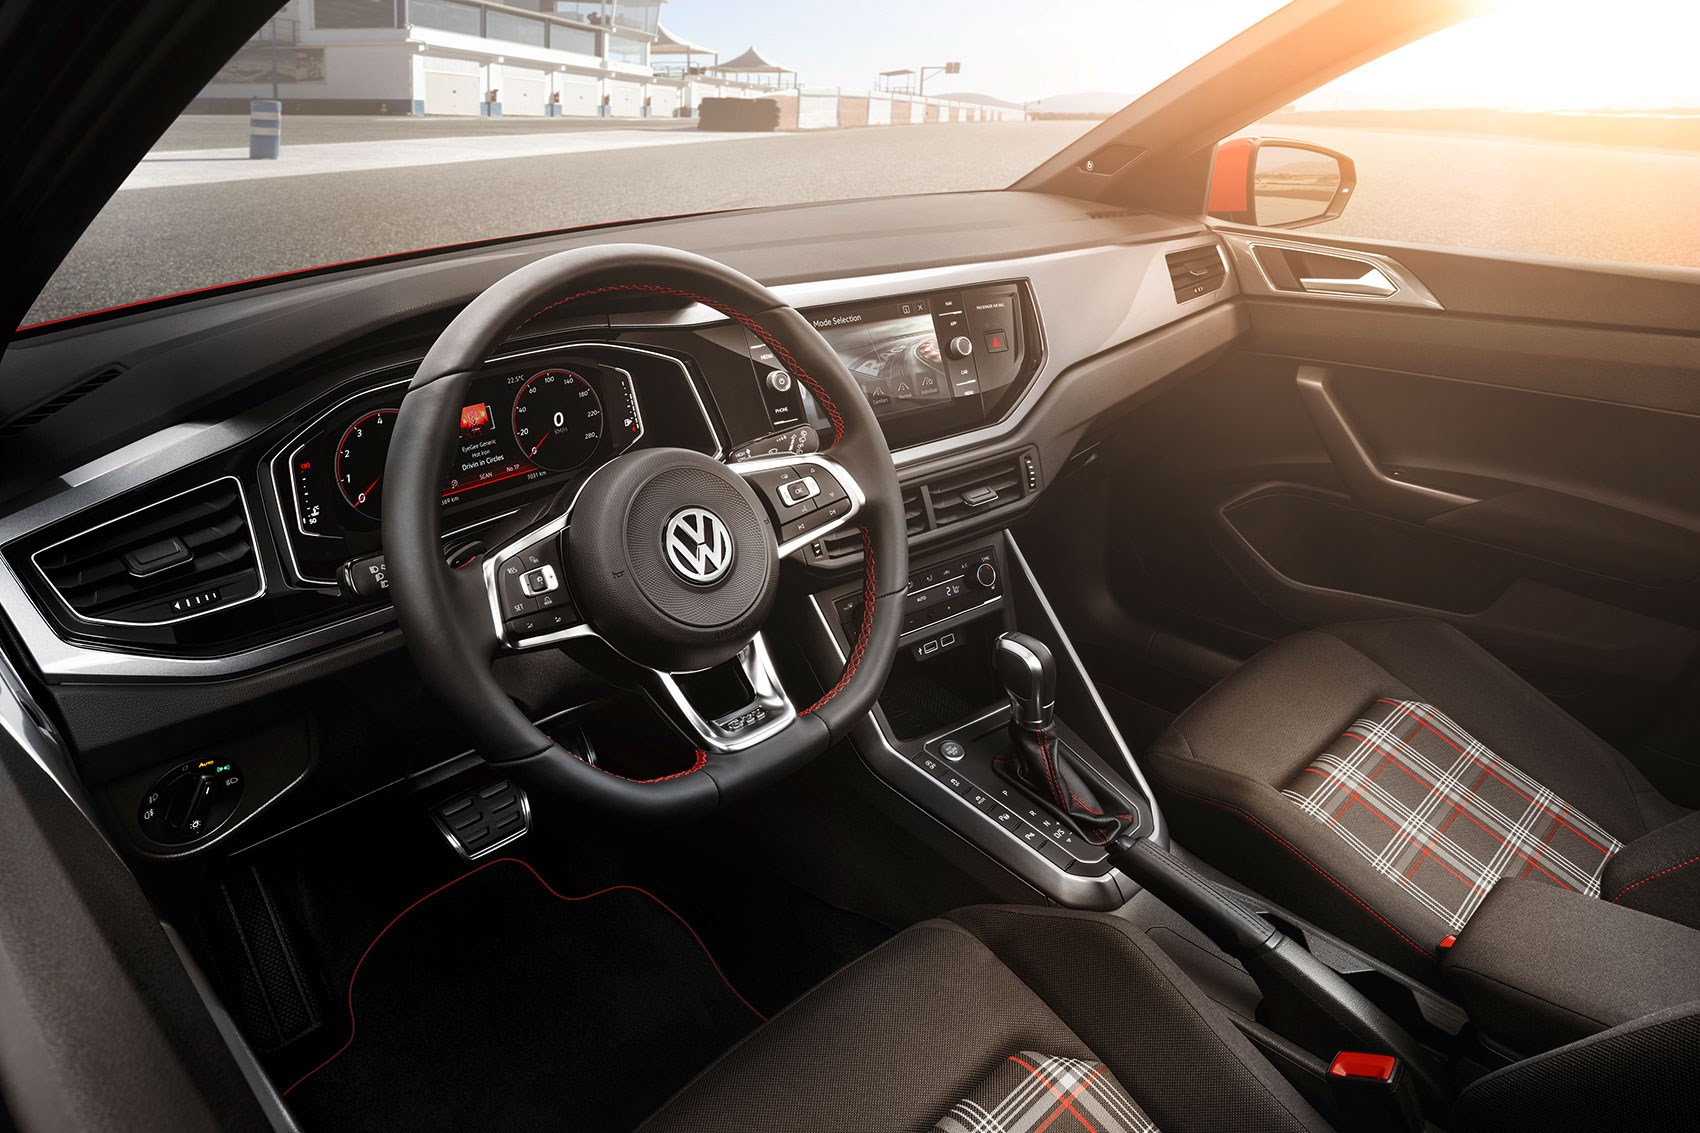 VW Polo 2018 in pictures | CAR Magazine